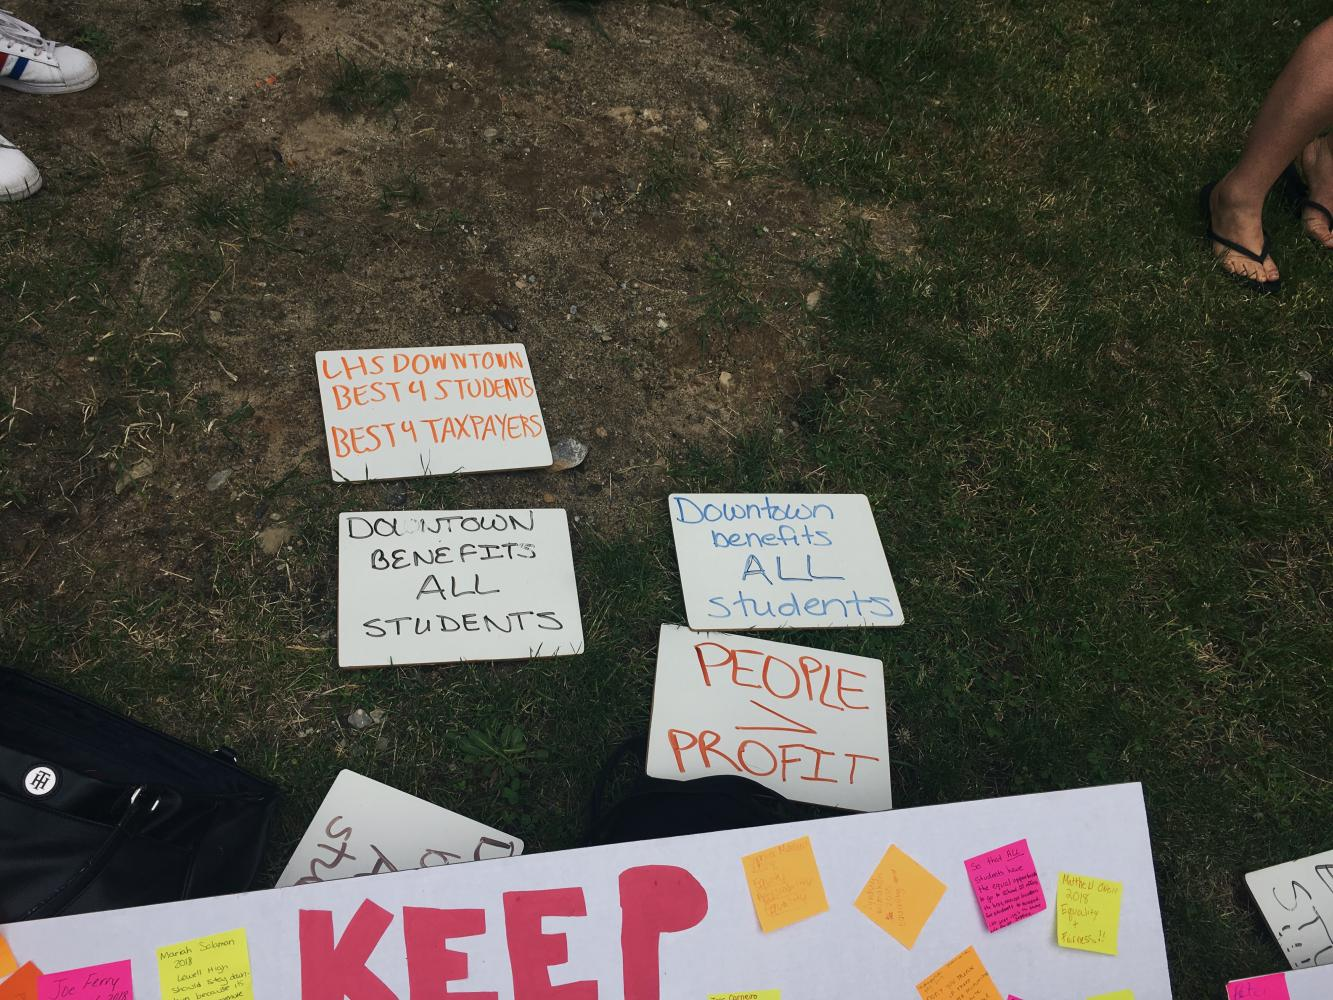 Written+on+white+boards+are+reasons+for+why+LHS+should+stay+in+the+downtown.++Students+made+a+peaceful+plea.